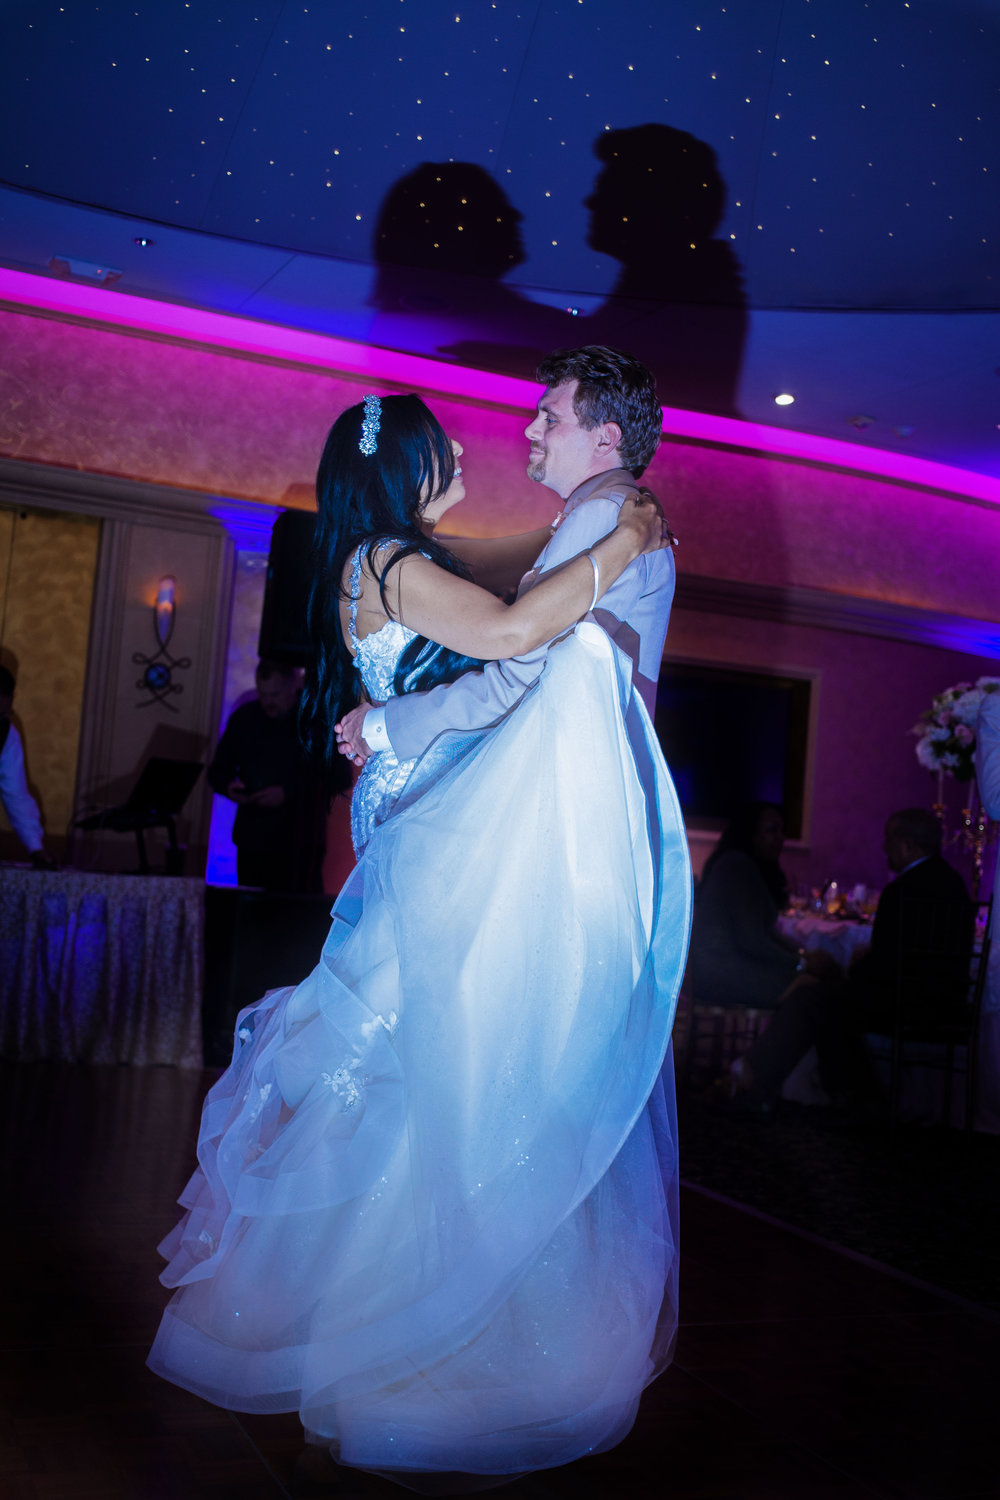 5-1-2016_Errol Ebanks_RyanMariaWedding_reception363.JPG